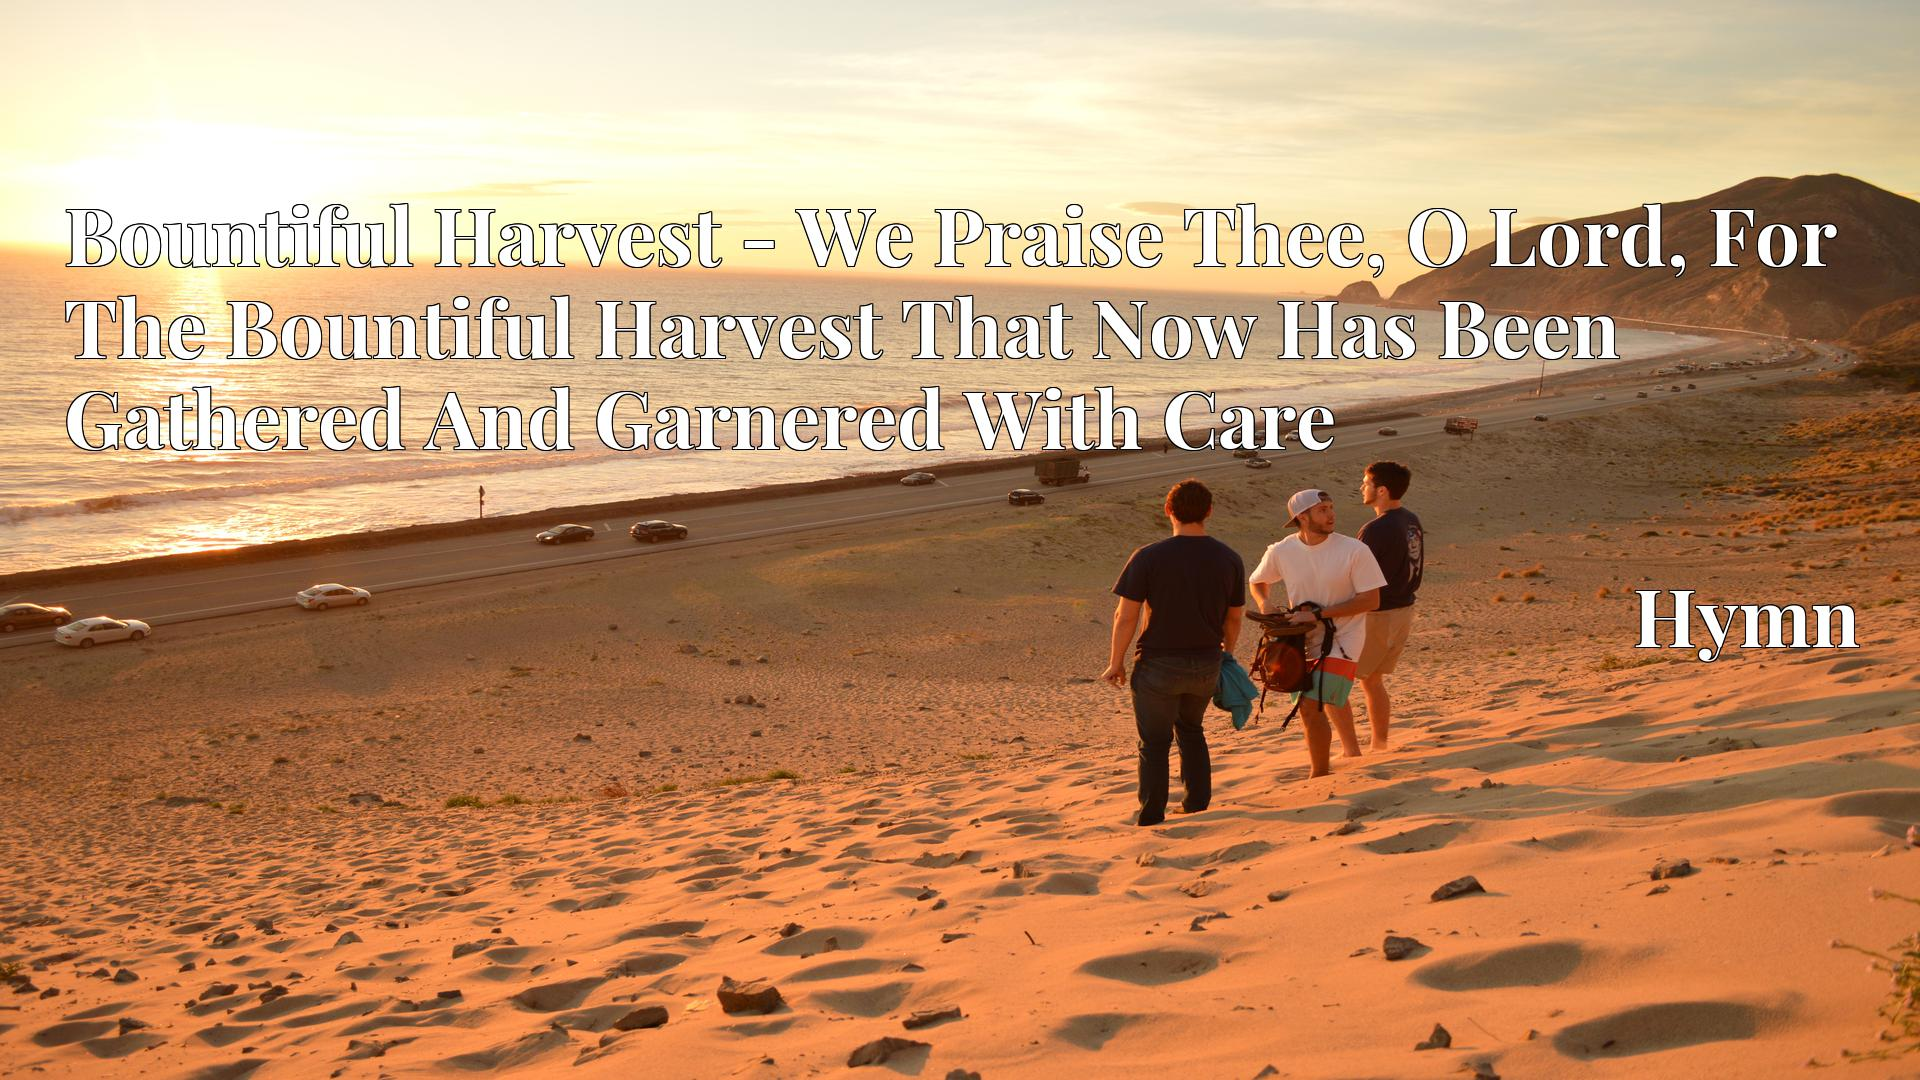 Bountiful Harvest - We Praise Thee, O Lord, For The Bountiful Harvest That Now Has Been Gathered And Garnered With Care - Hymn